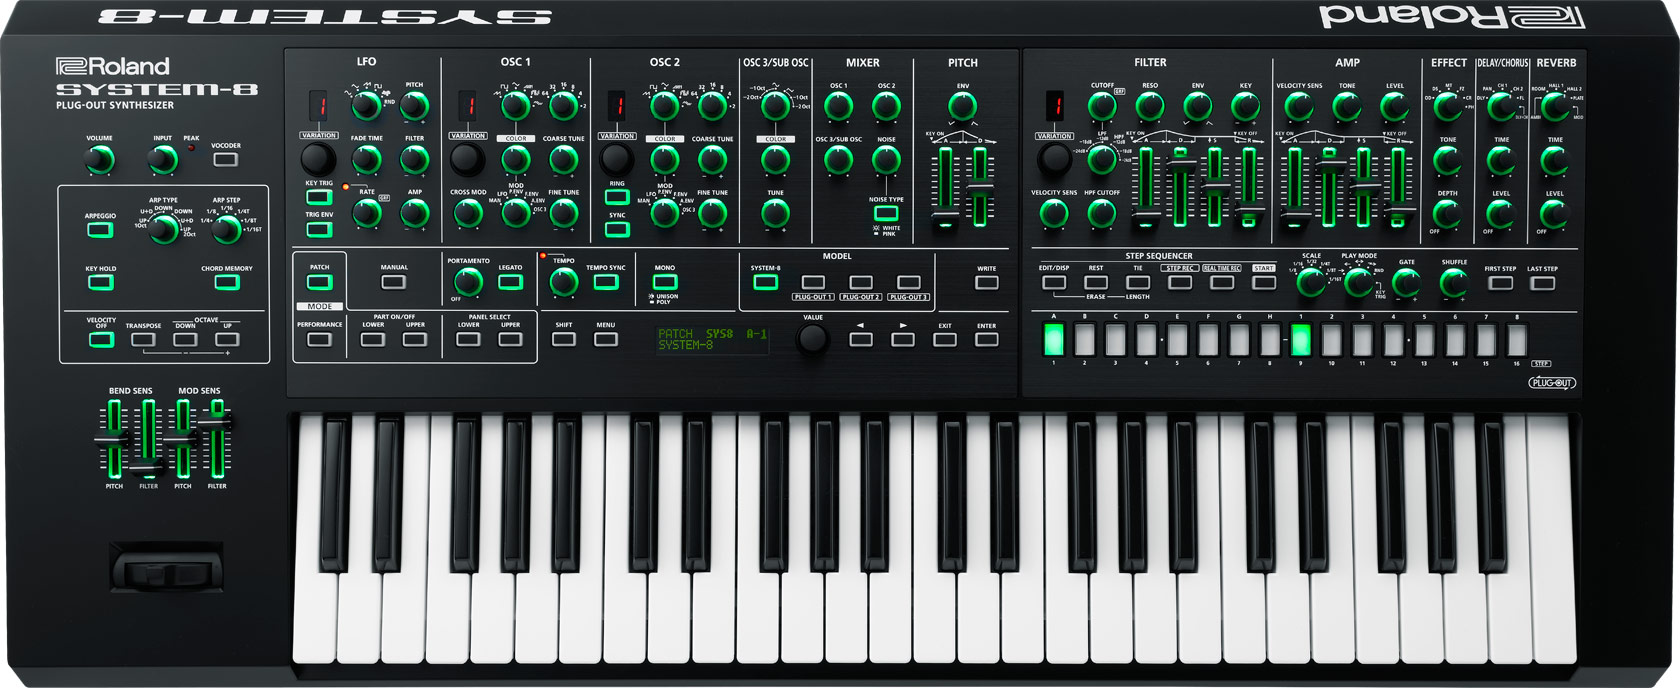 Roland Released System 8 Firmware V 1 3 With The New Jx 3p